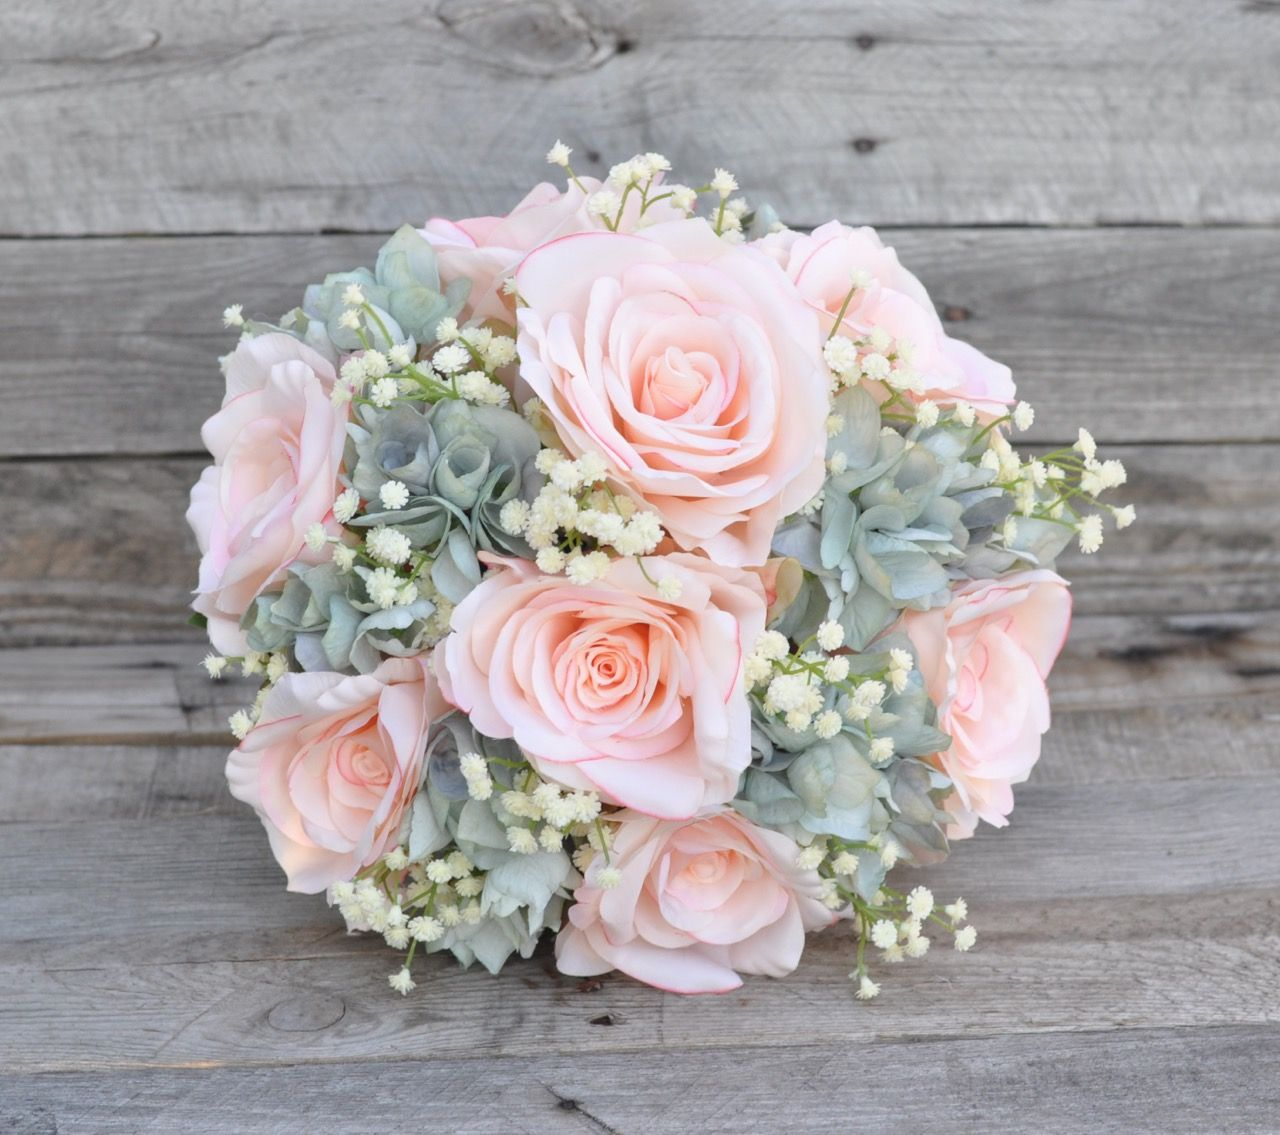 Coastal vintage inspired silk wedding bouquet made with peach roses